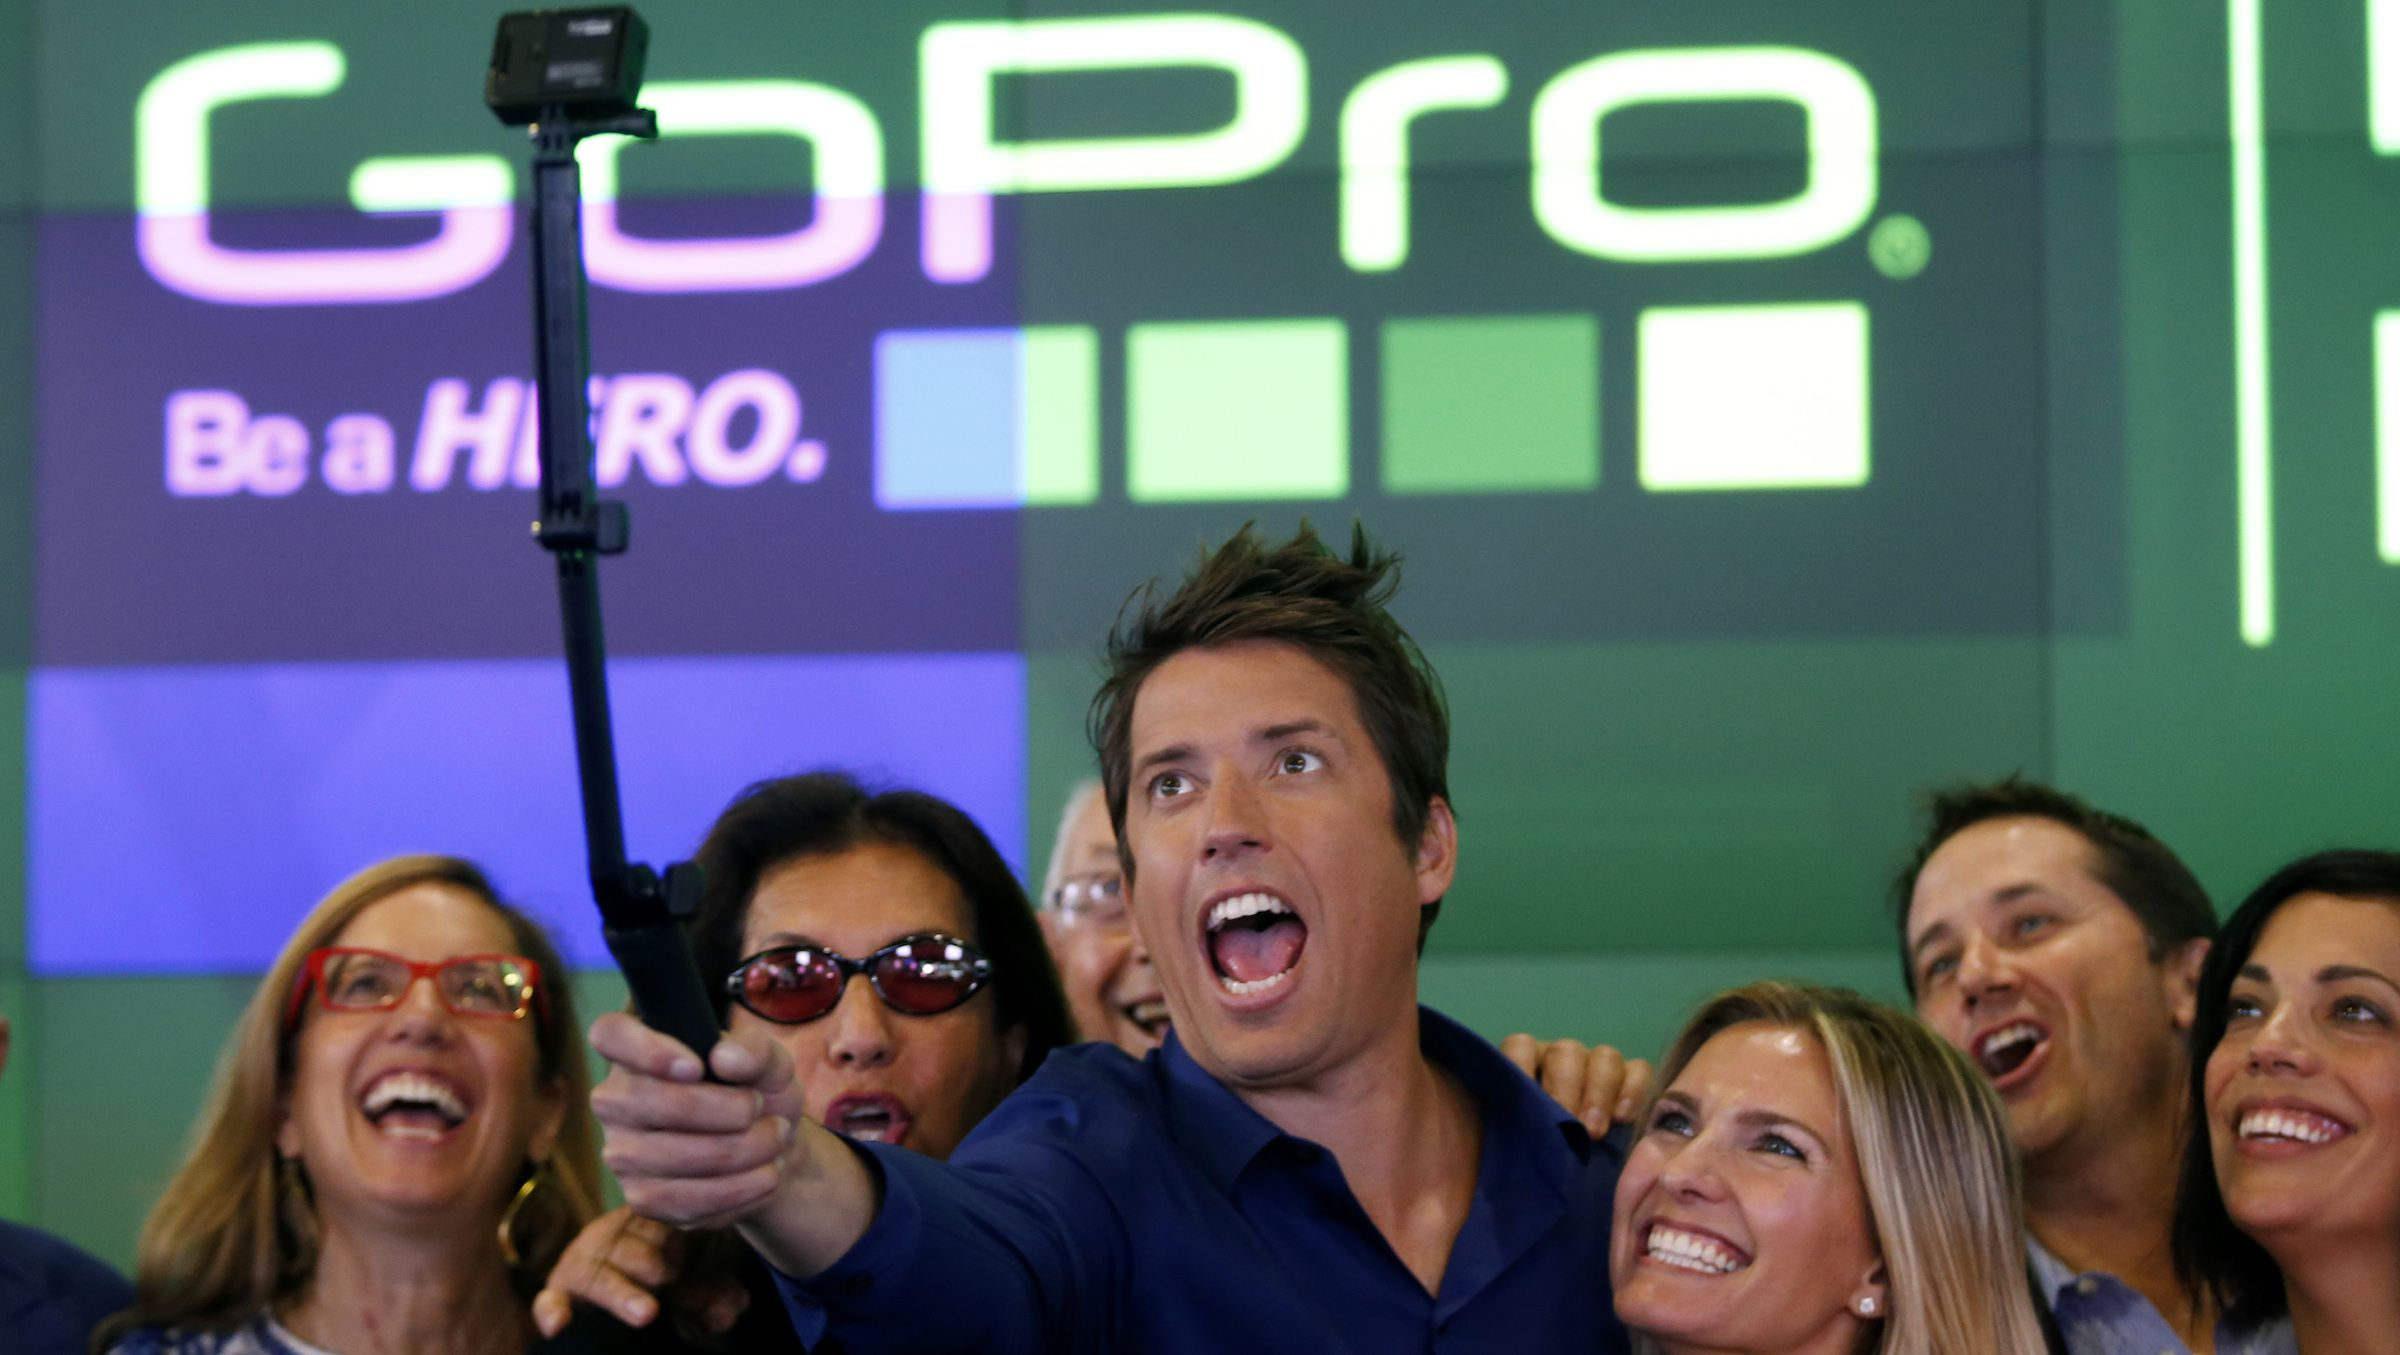 GoPro Inc's founder and CEO Nick Woodman (C) celebrates GoPro Inc's IPO with family and staff at the Nasdaq Market Site in New York City, June 26, 2014. Wearable sports camera maker GoPro Inc's initial public offering was priced at $24 per share, an underwriter said, valuing the company at up to $2.96 billion. At Woodman's right is his wife Jill.  REUTERS/Mike Segar  (UNITED STATES - Tags: BUSINESS SCIENCE TECHNOLOGY) - RTR3VVL0